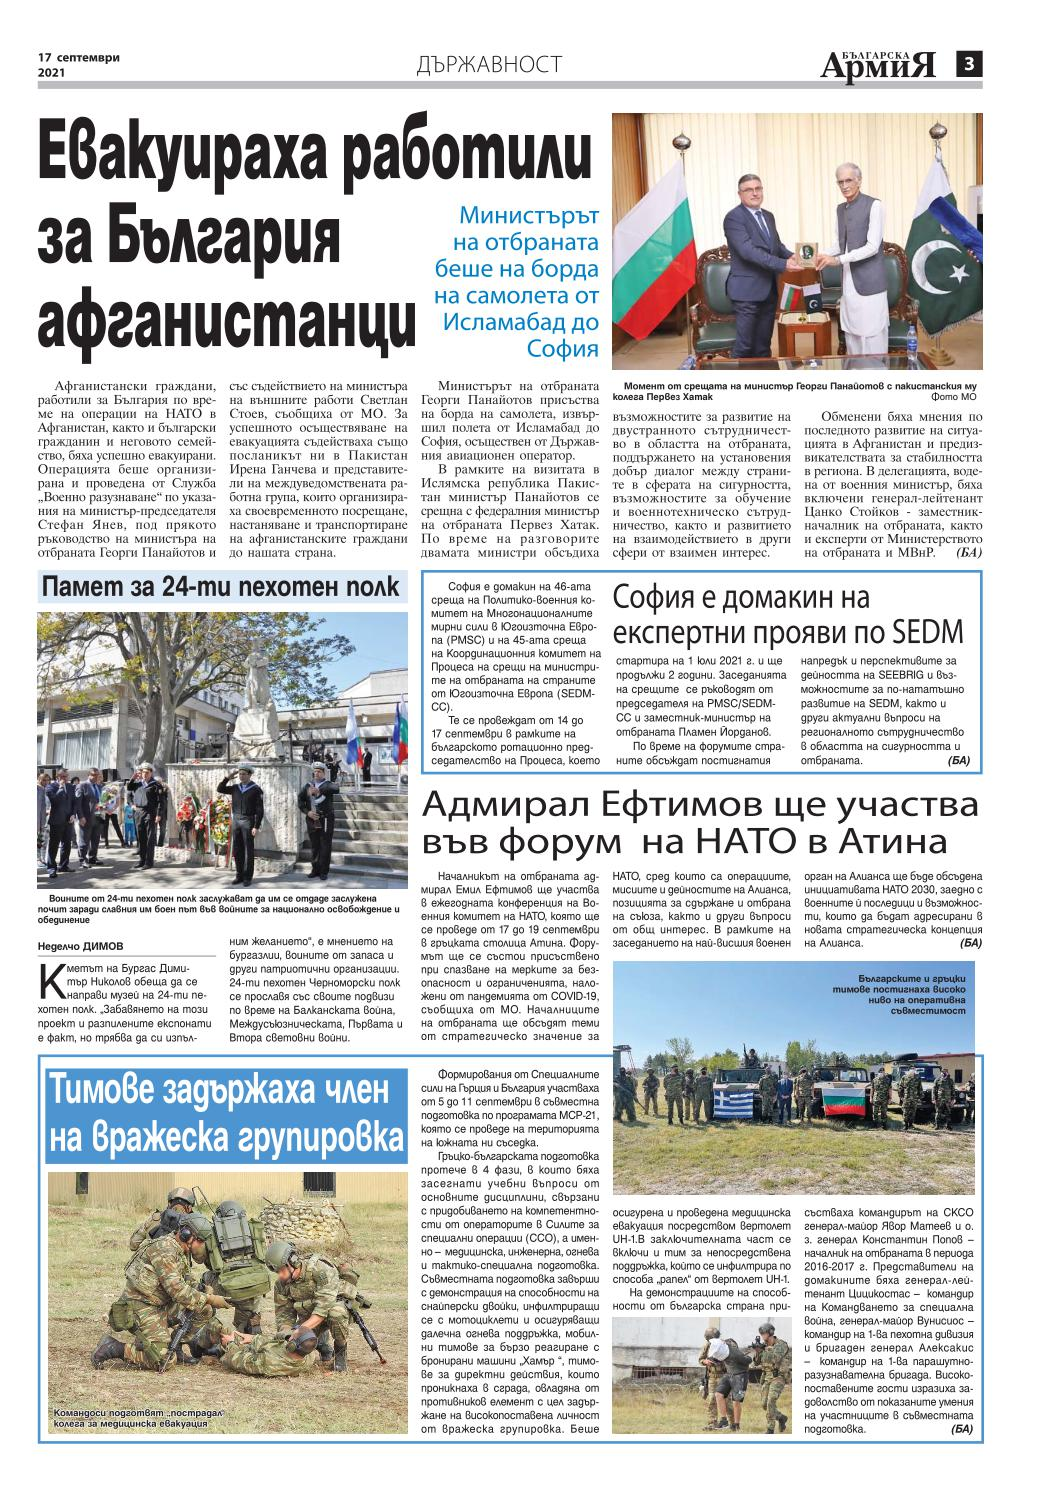 https://armymedia.bg/wp-content/uploads/2021/09/03.page1_-2.jpg